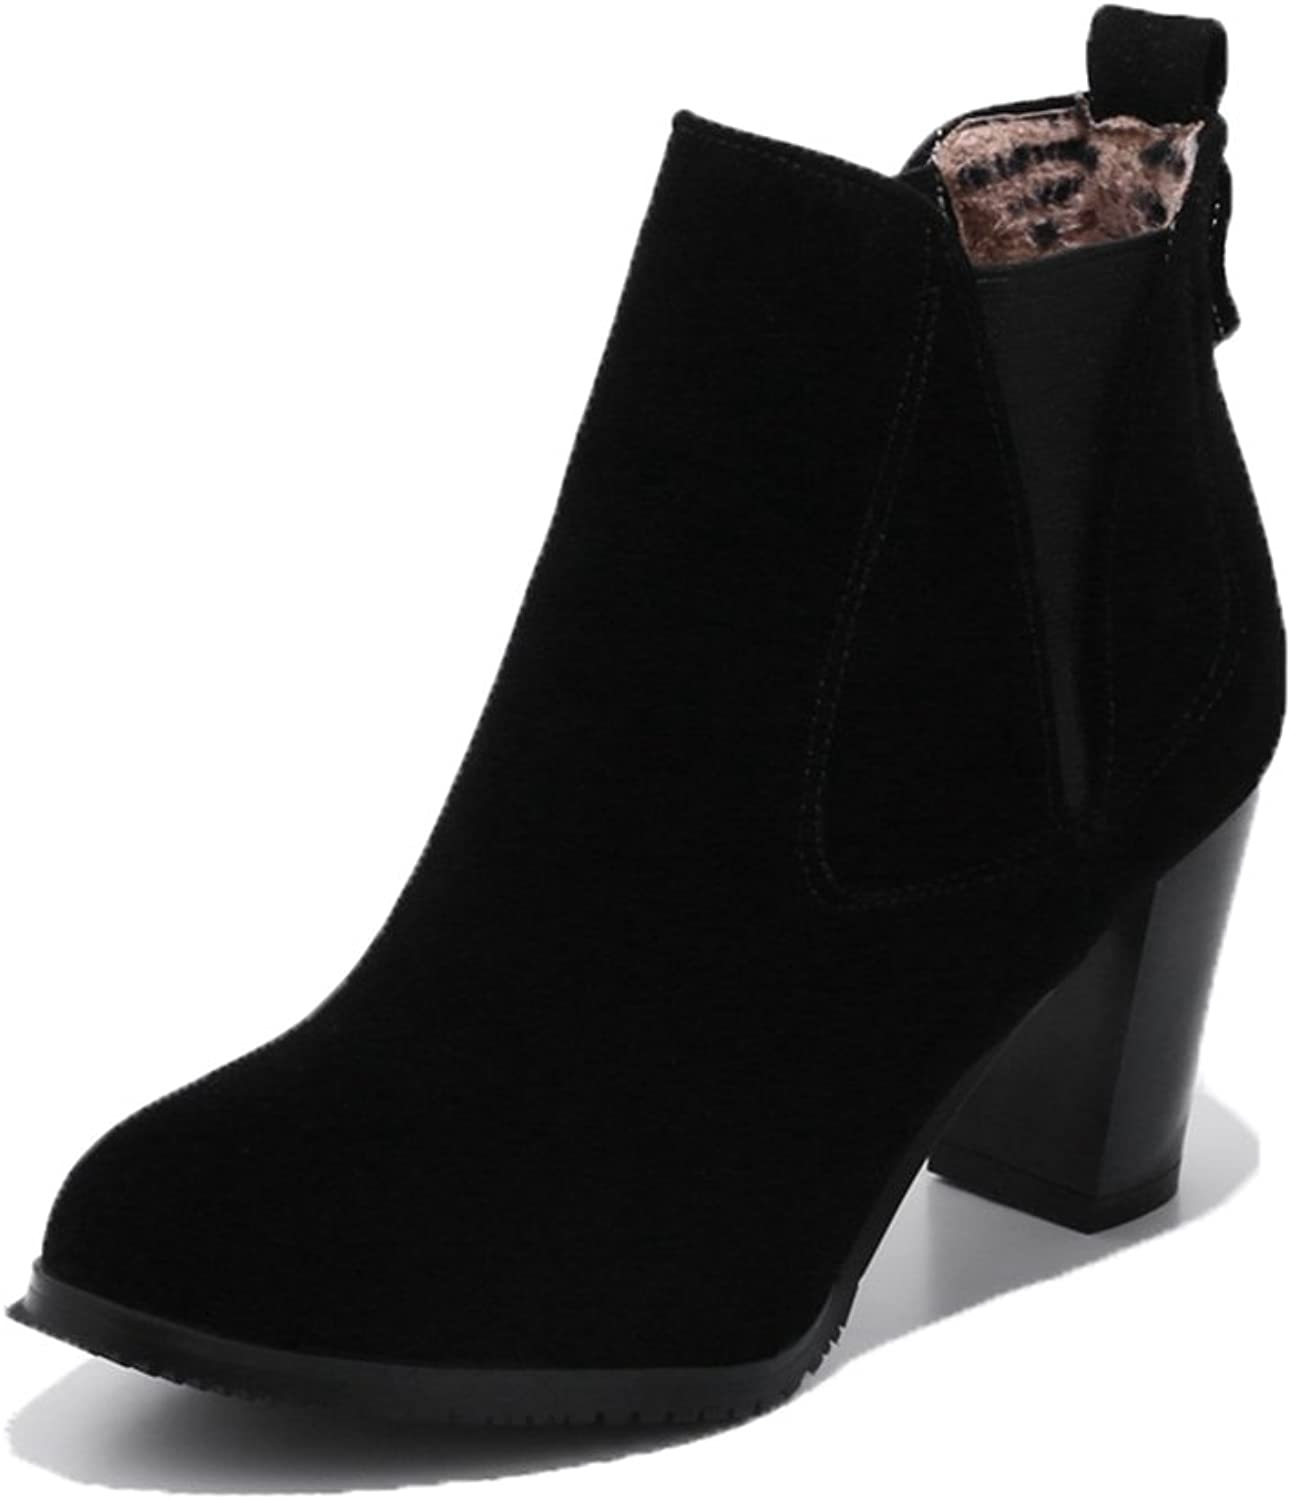 SaraIris Women's Chunky High Heel Comfortable shoes Casual Ankle Boots